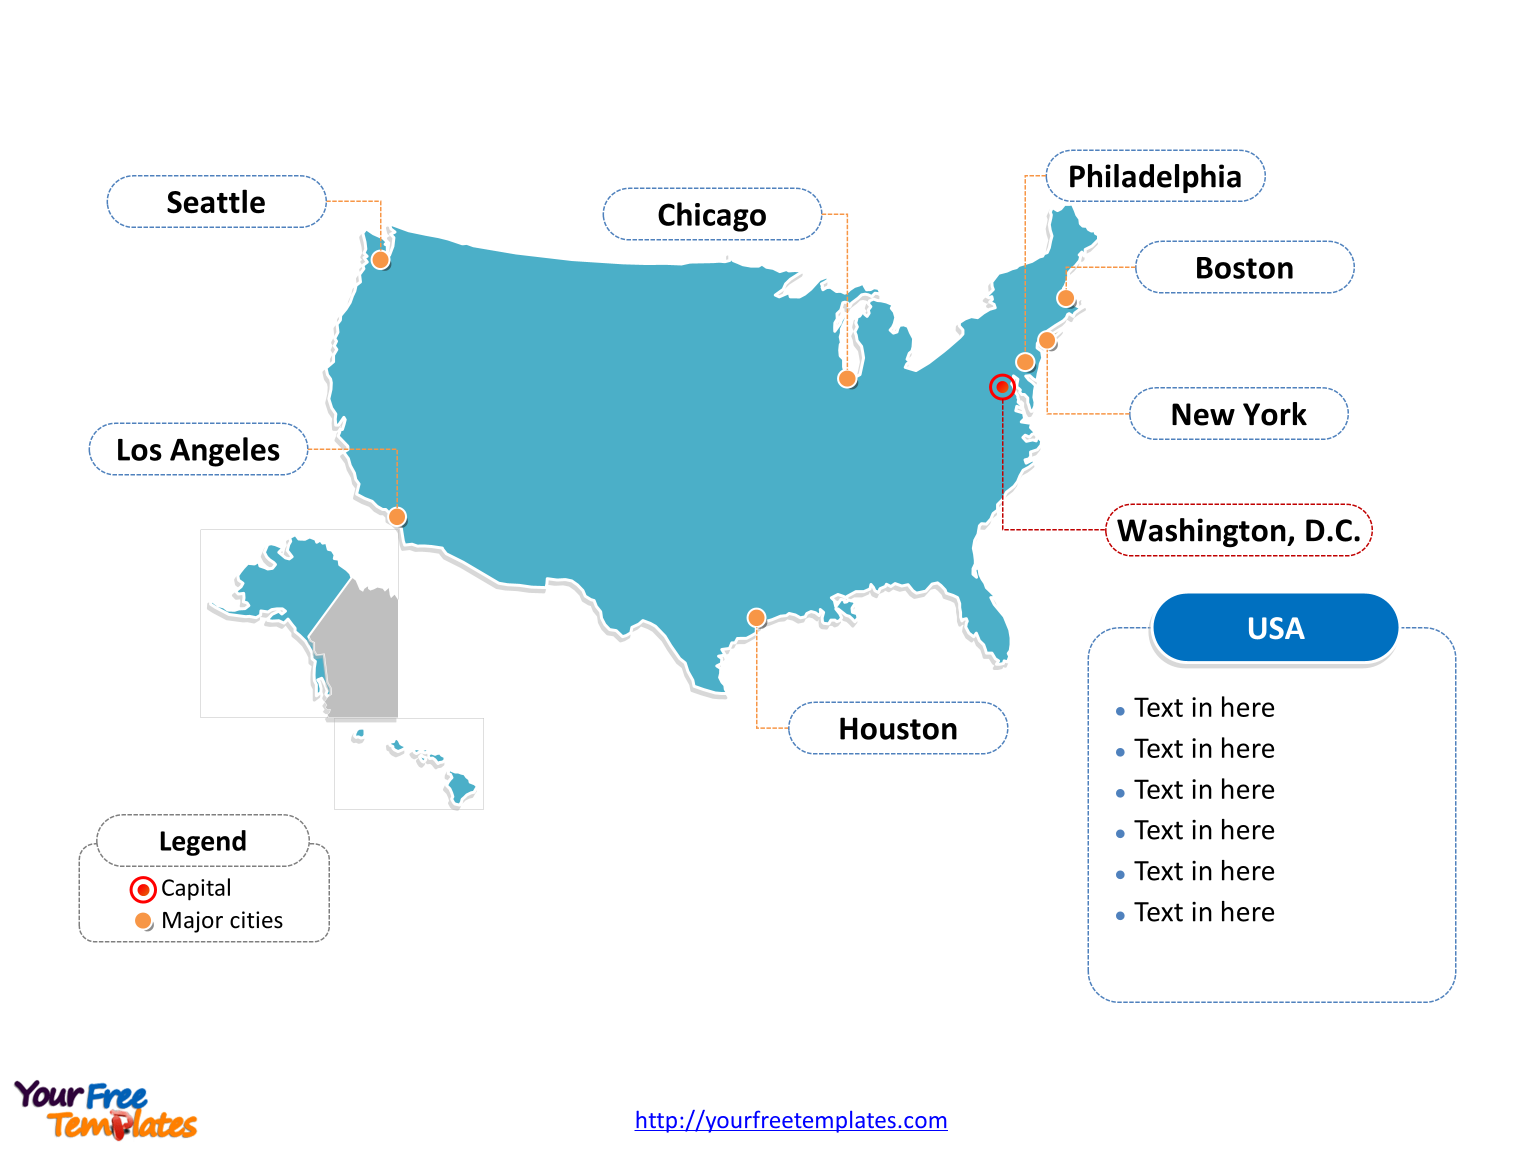 Free USA PowerPoint Map Free PowerPoint Templates - Los angeles map download